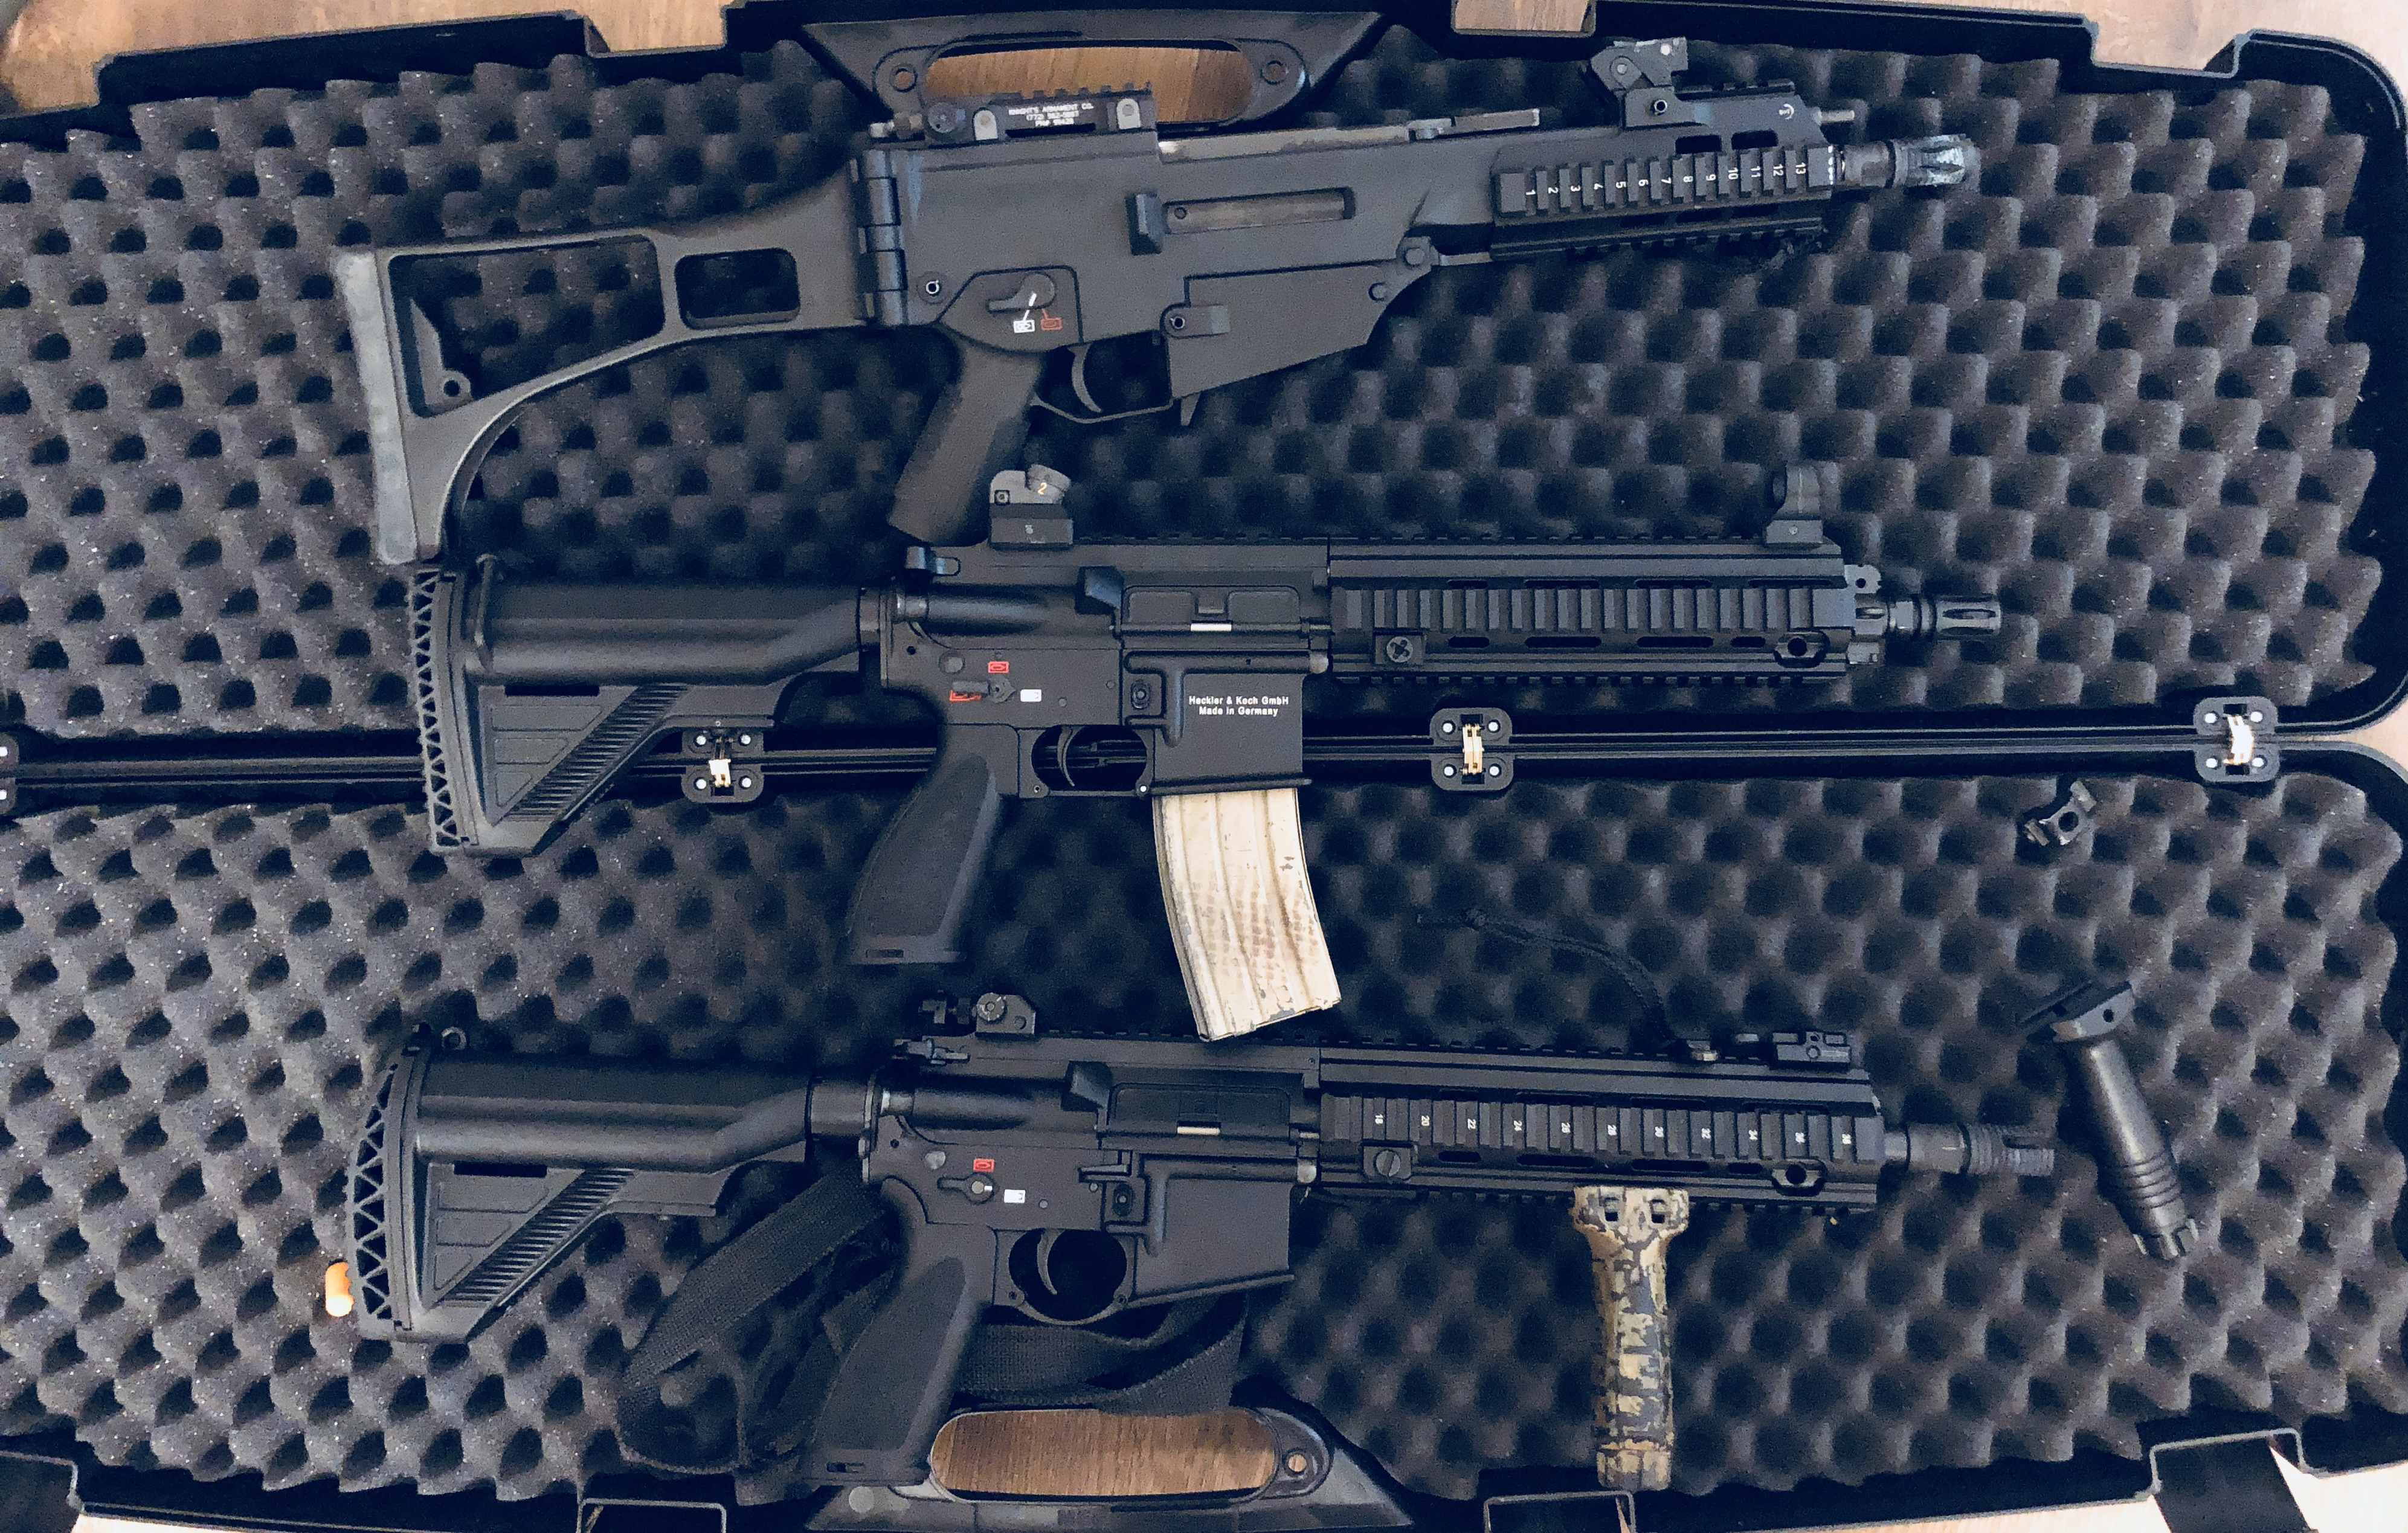 HK416 Owners Picture Thread (genuine HK416's only please)-1107049f-8a2f-4f58-9272-2df1450ccd1c_1534278033468.jpeg